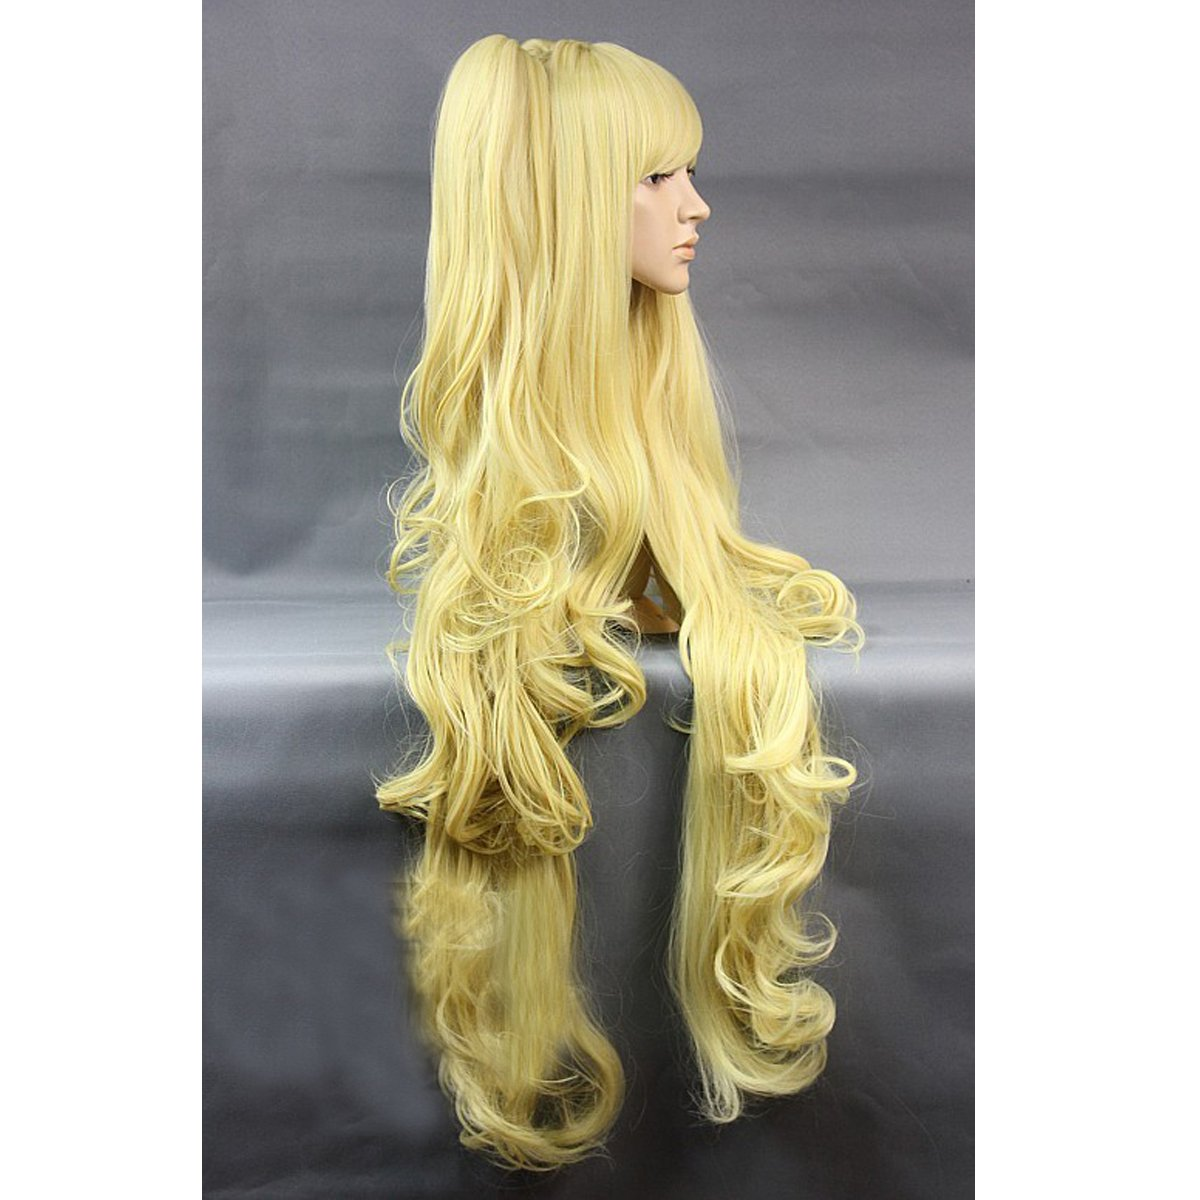 Amazon.com: Angelaicos Womens Lolita Harajuku Style Curly Wavy Layred Clip on Ponytails Halloween Costume Cosplay Party Wigs Long Yellow 40 Inches: Beauty